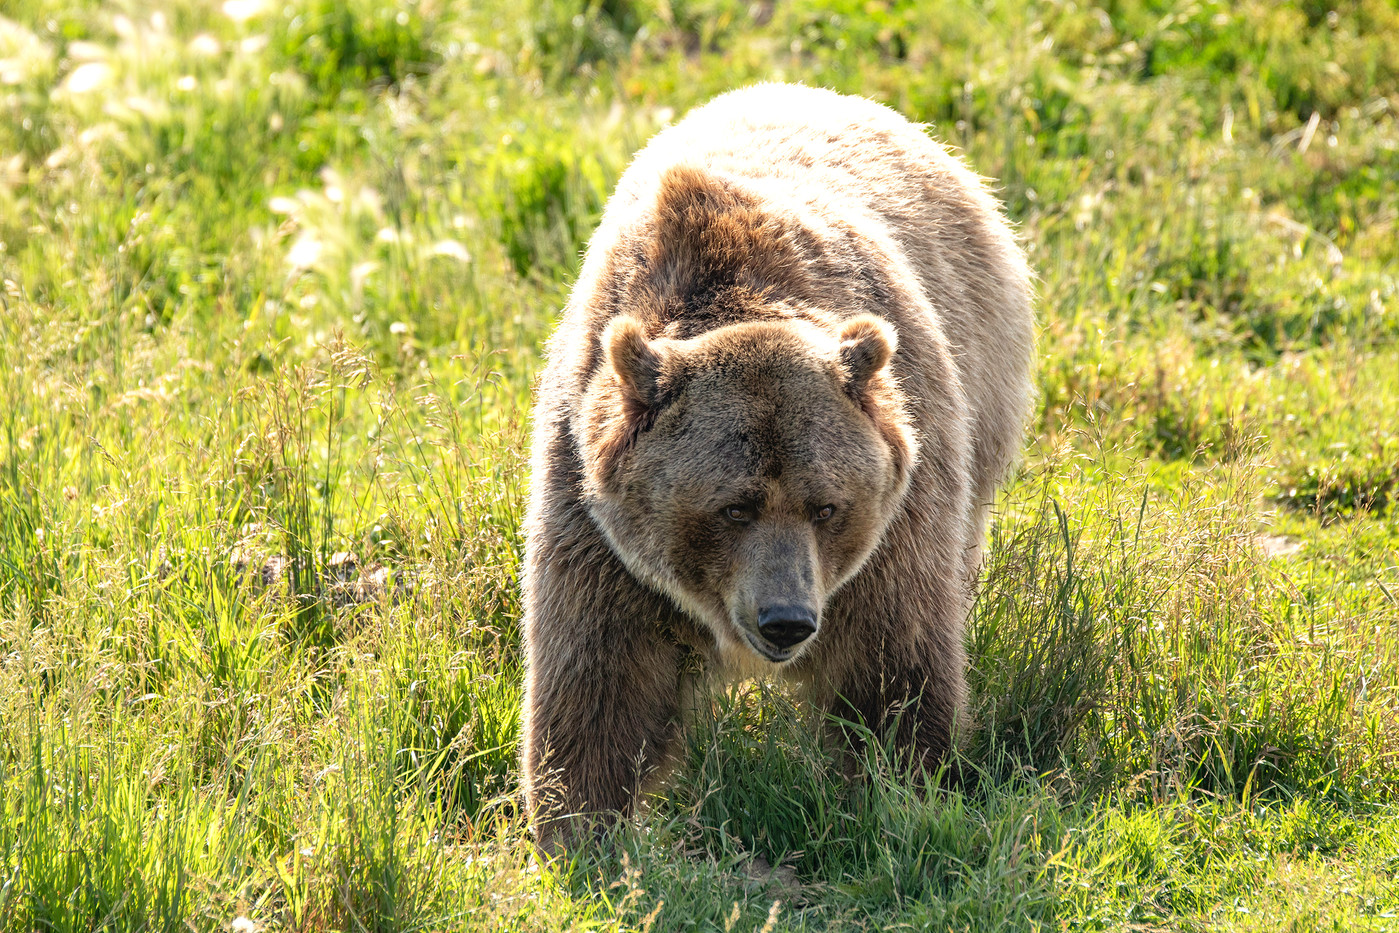 Grizzly Bear in Montana, USA